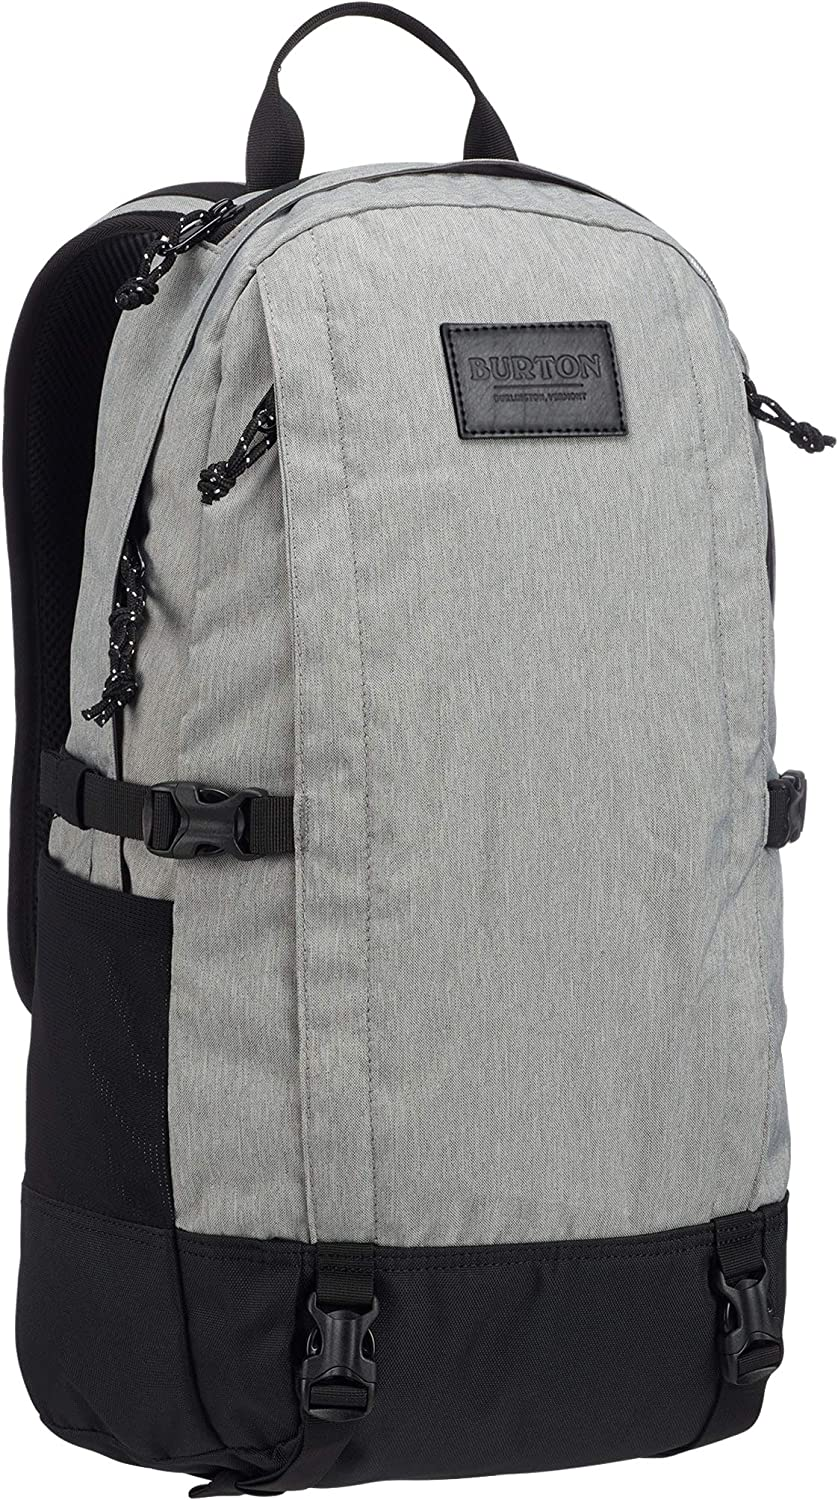 Burton Sleyton Backpack with Laptop Compartment and Water Bottle Pocket